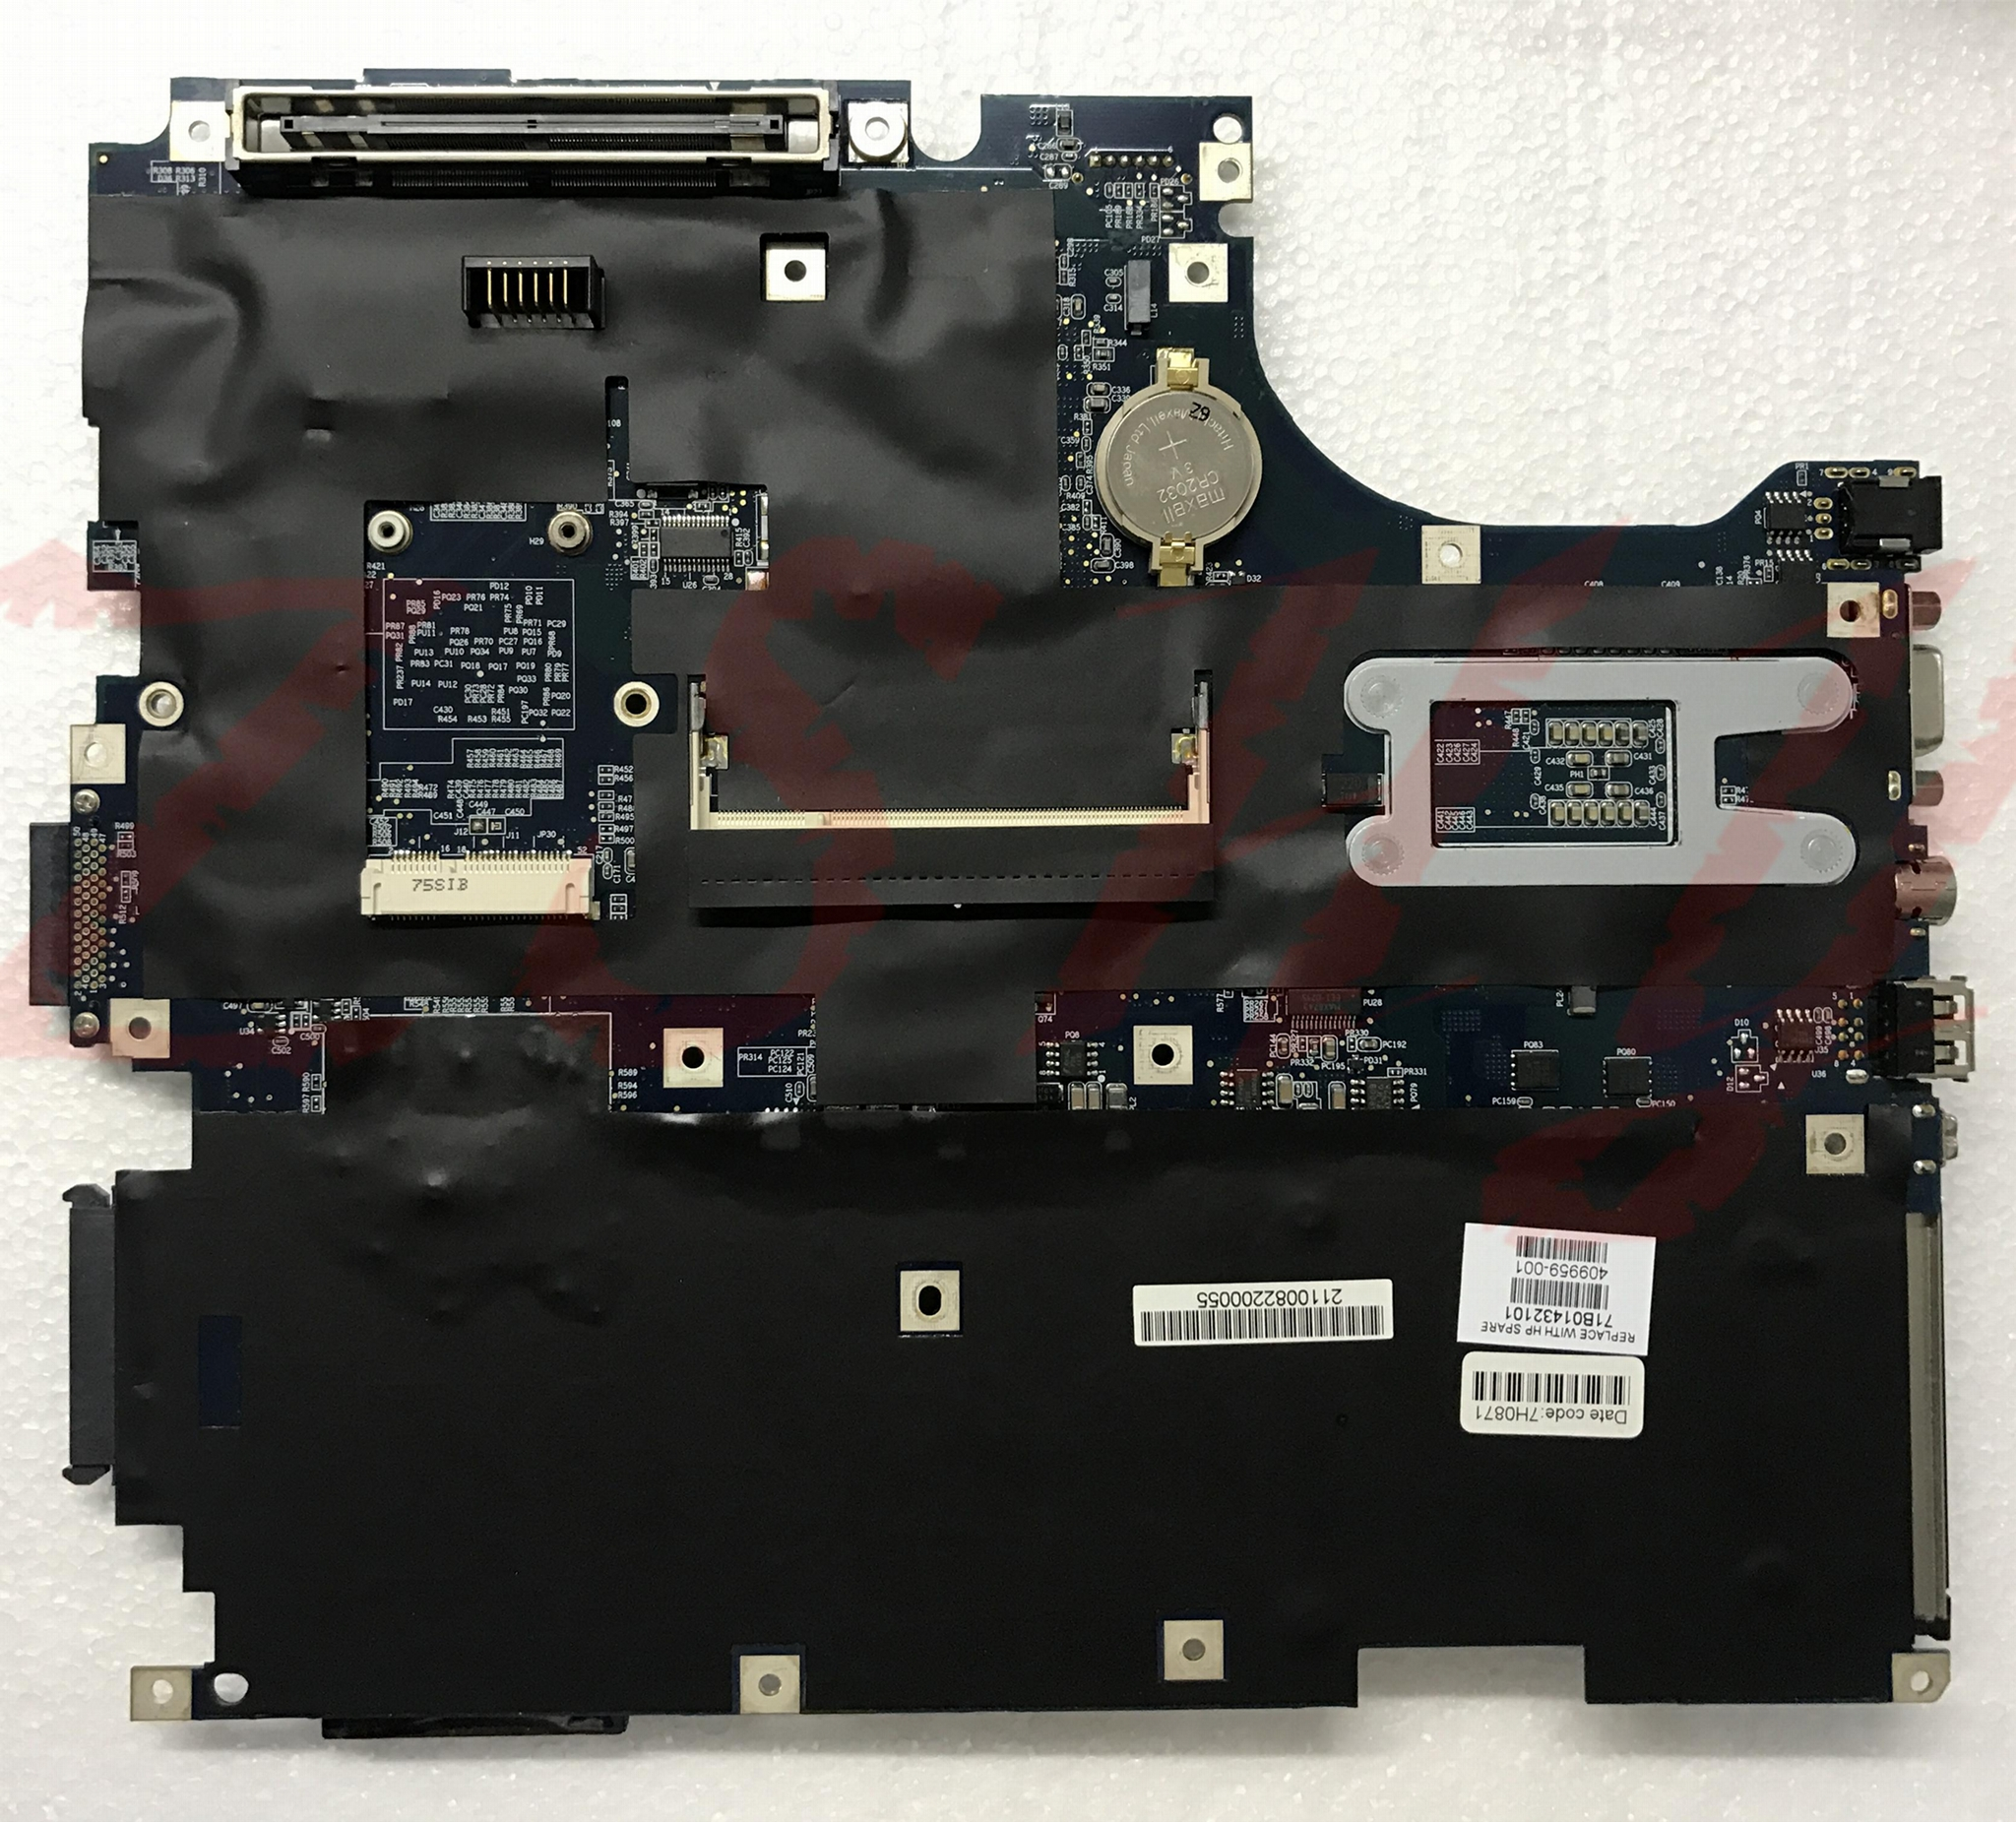 409959-001 motherboard for hp nx9420 nw9440 laptop motherboard ddr2 pm945 Free S 1